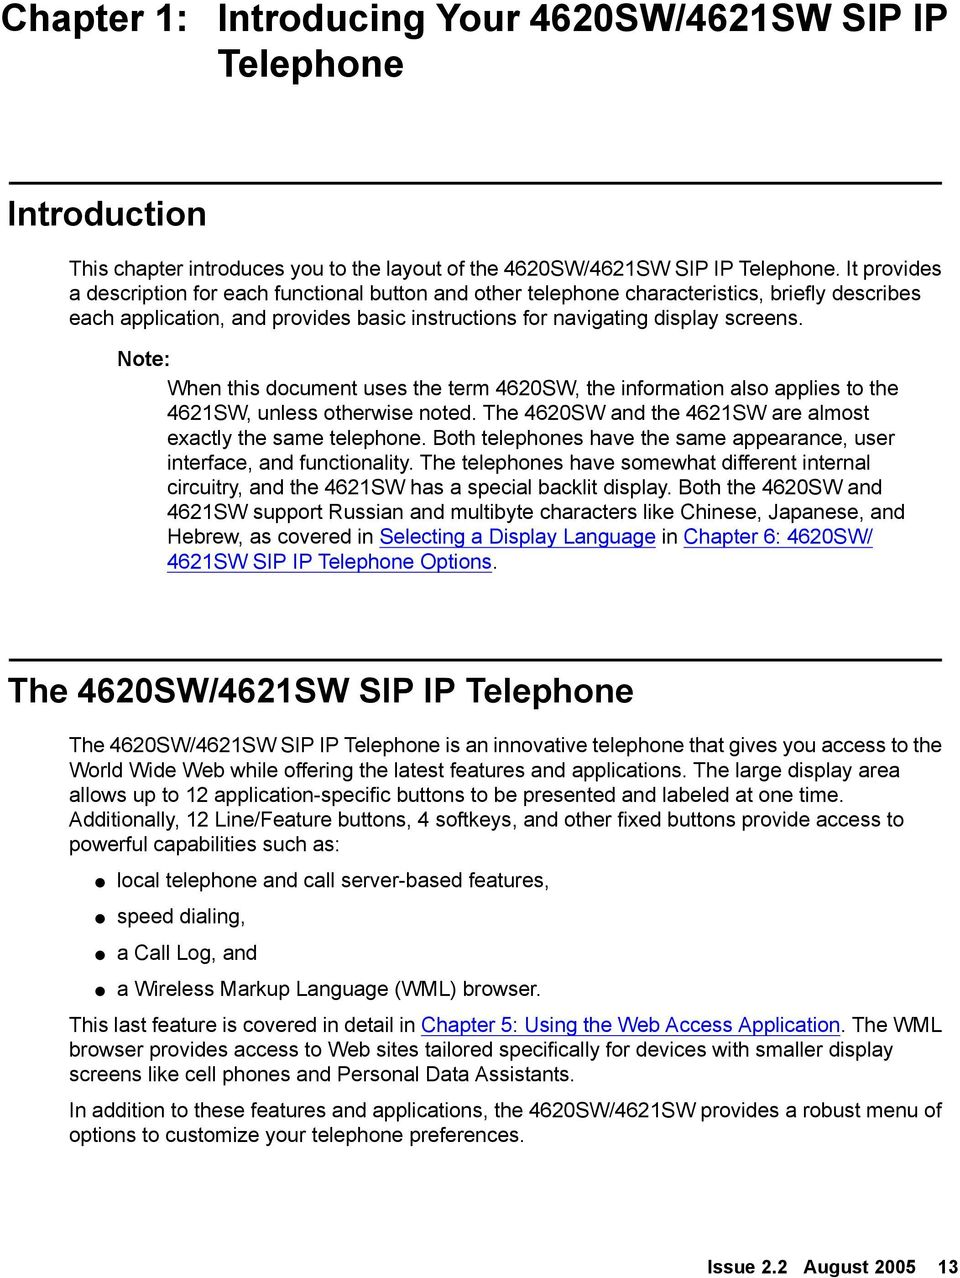 When this document uses the term 4620SW, the information also applies to the 4621SW, unless otherwise noted. The 4620SW and the 4621SW are almost exactly the same telephone.